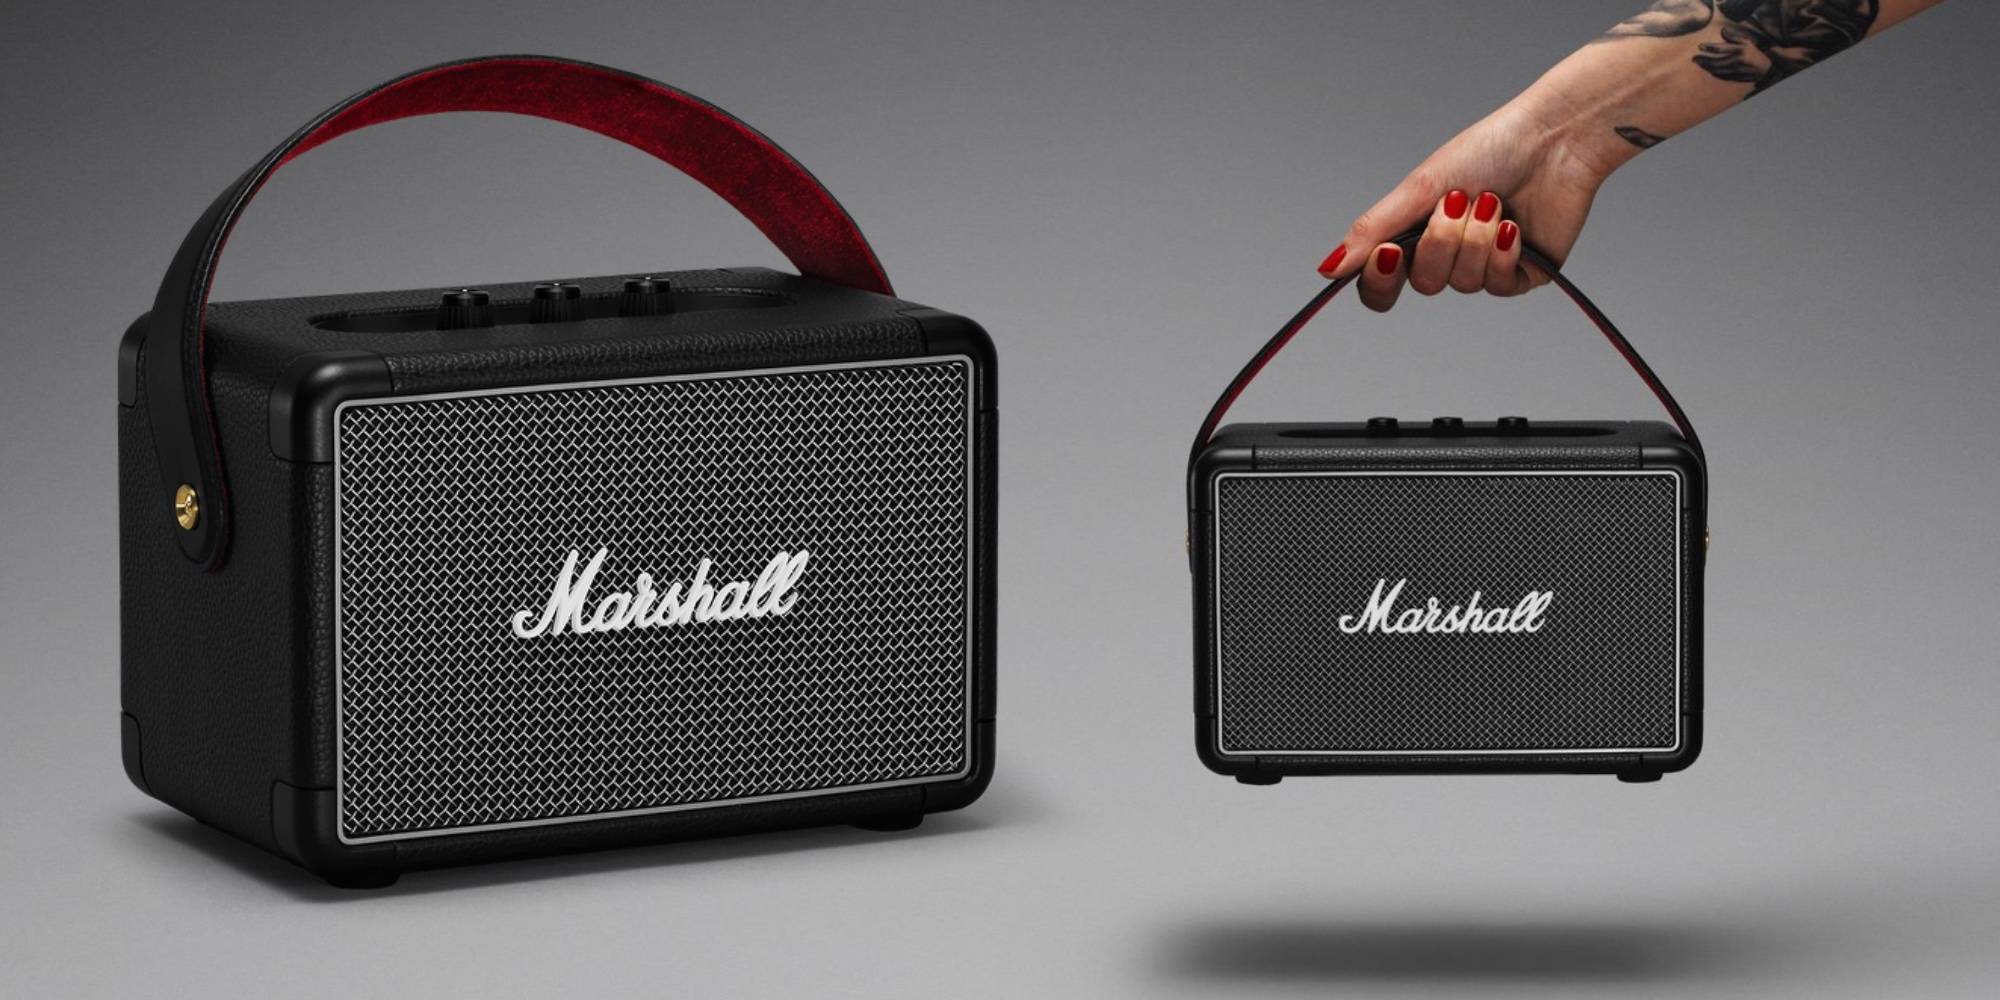 Rock out w/ Marshall's Kilburn II Portable Bluetooth Speaker at $258 (Save $40+), more from $70